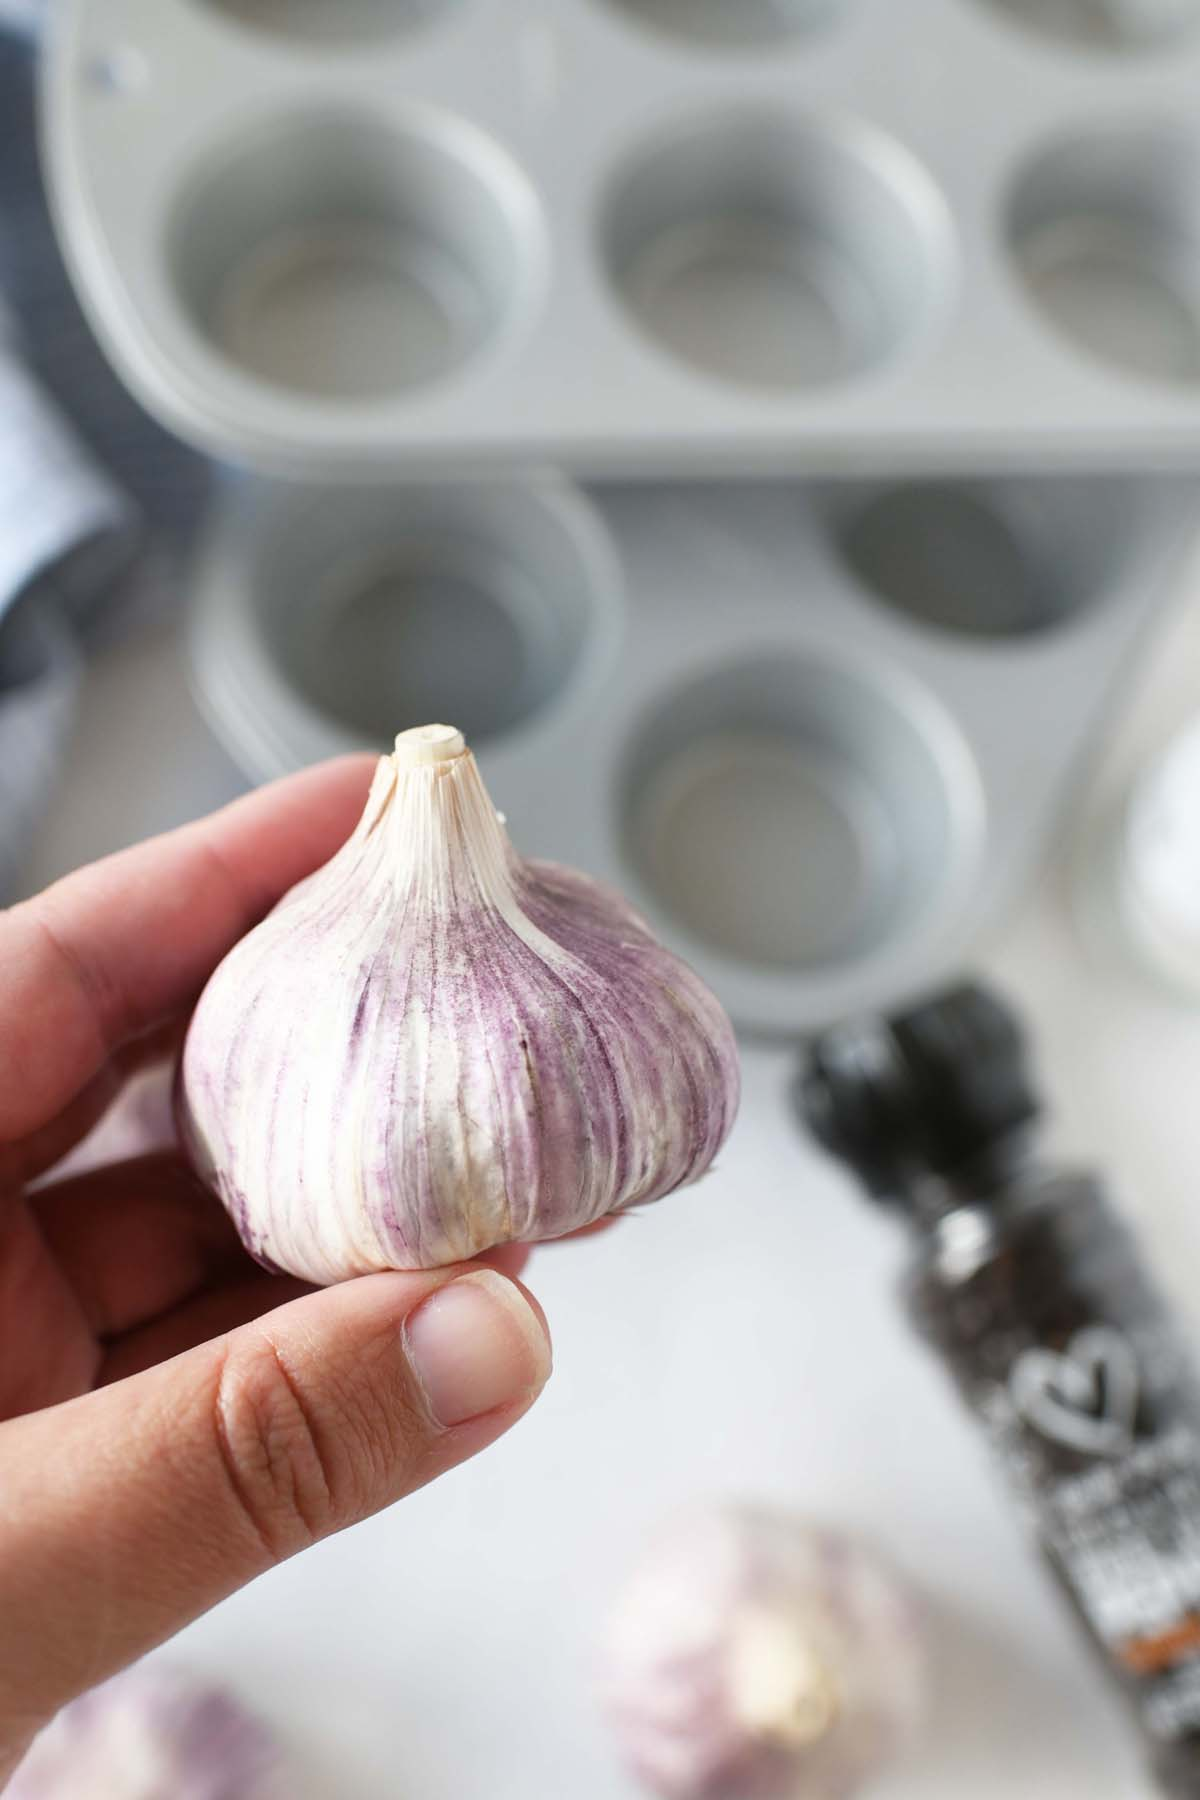 Whole Roasted Garlic in a white hand.